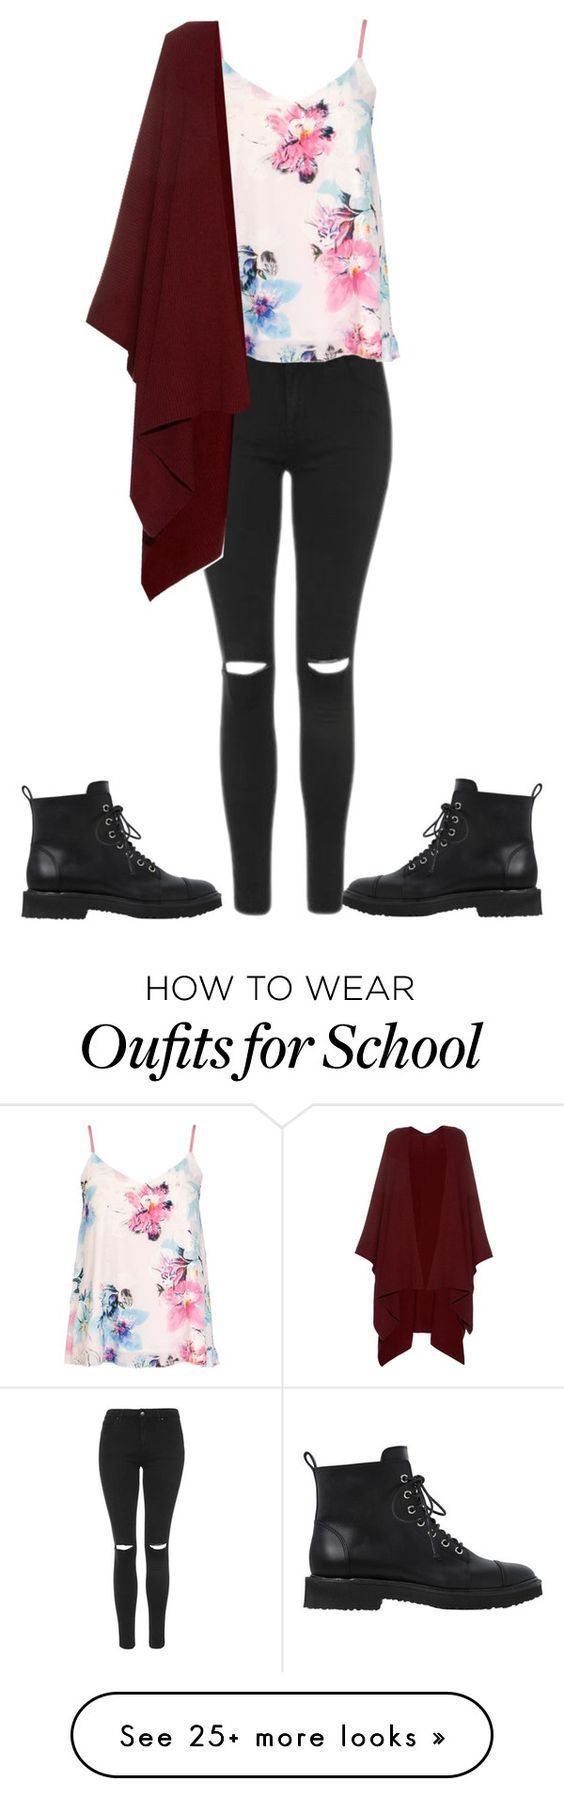 """7. School weather"" by kirath on Polyvore featuring Topshop, Dorothy Perkins, The Row and Giuseppe Zanotti"